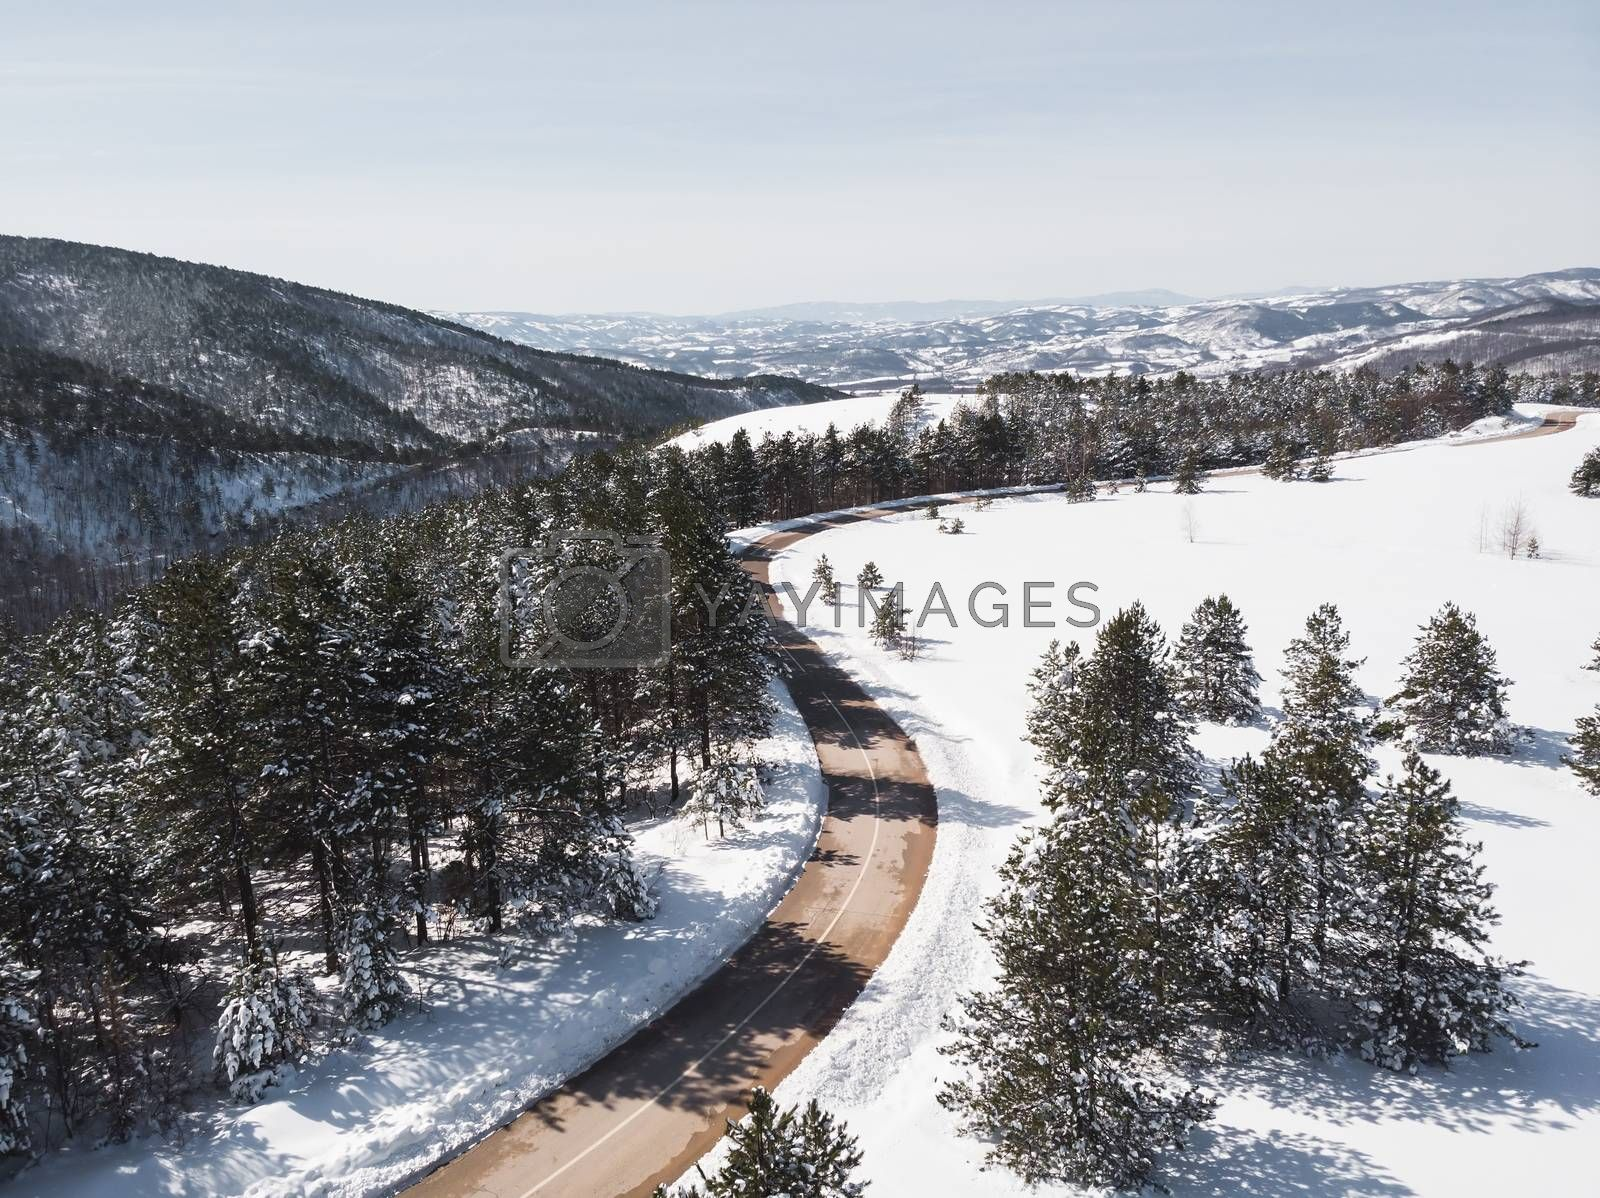 Winter landscape in sunlight. View on the mountain road surrounded by evergreen trees in winter, drone shot